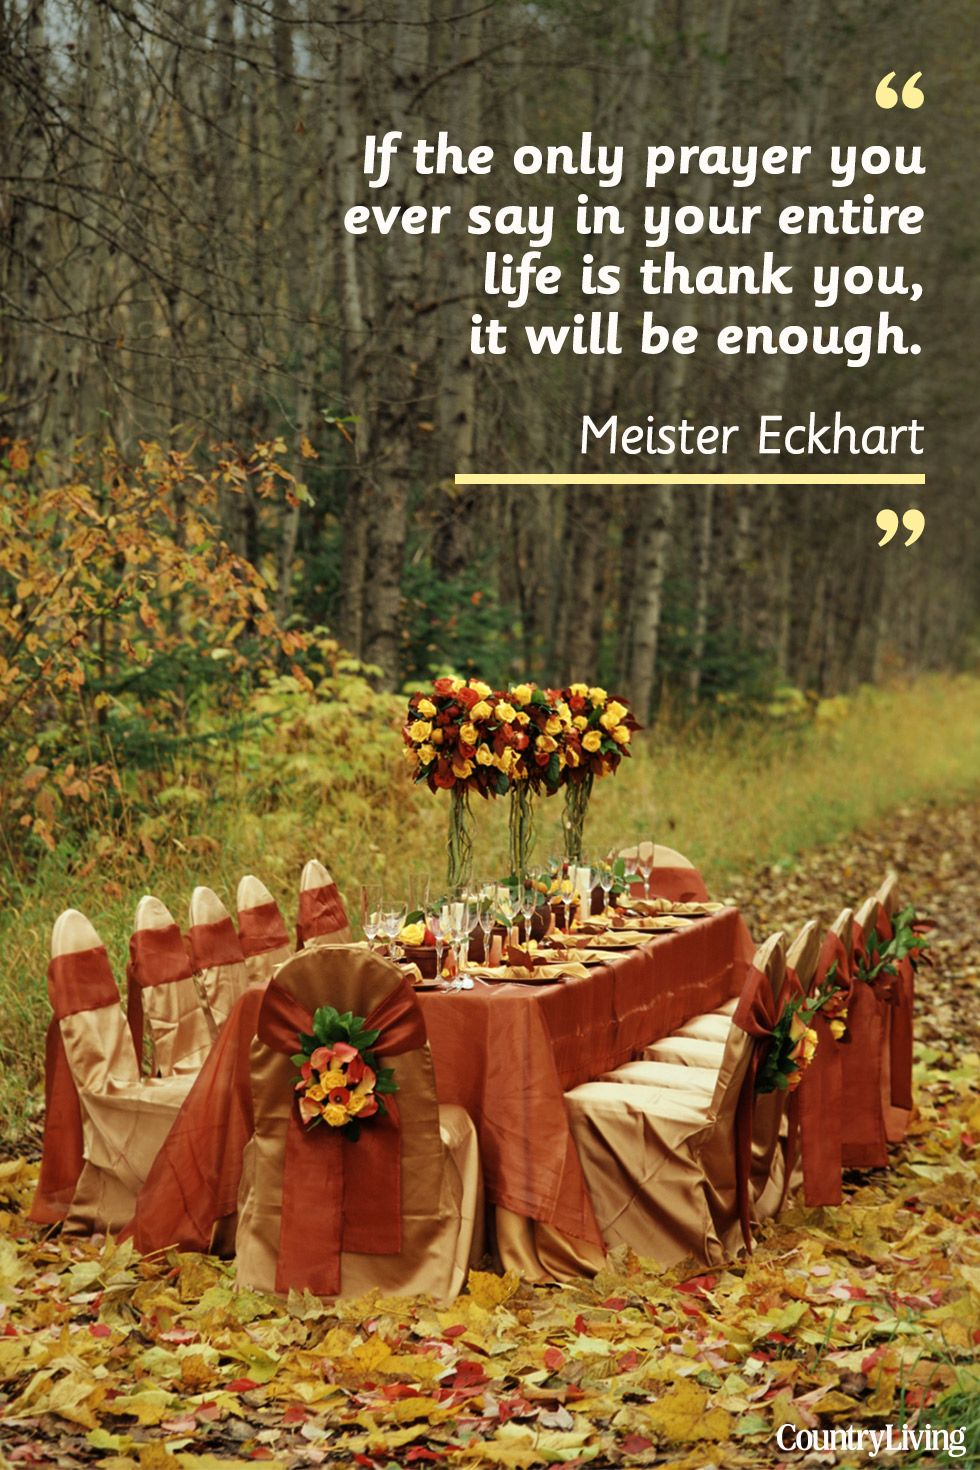 Give Your Family All The Feels On Turkey Day With These Heartfelt Thanksgiving Quotes Thanksgiving Quotes Family Thanksgiving Quotes Happy Thanksgiving Quotes